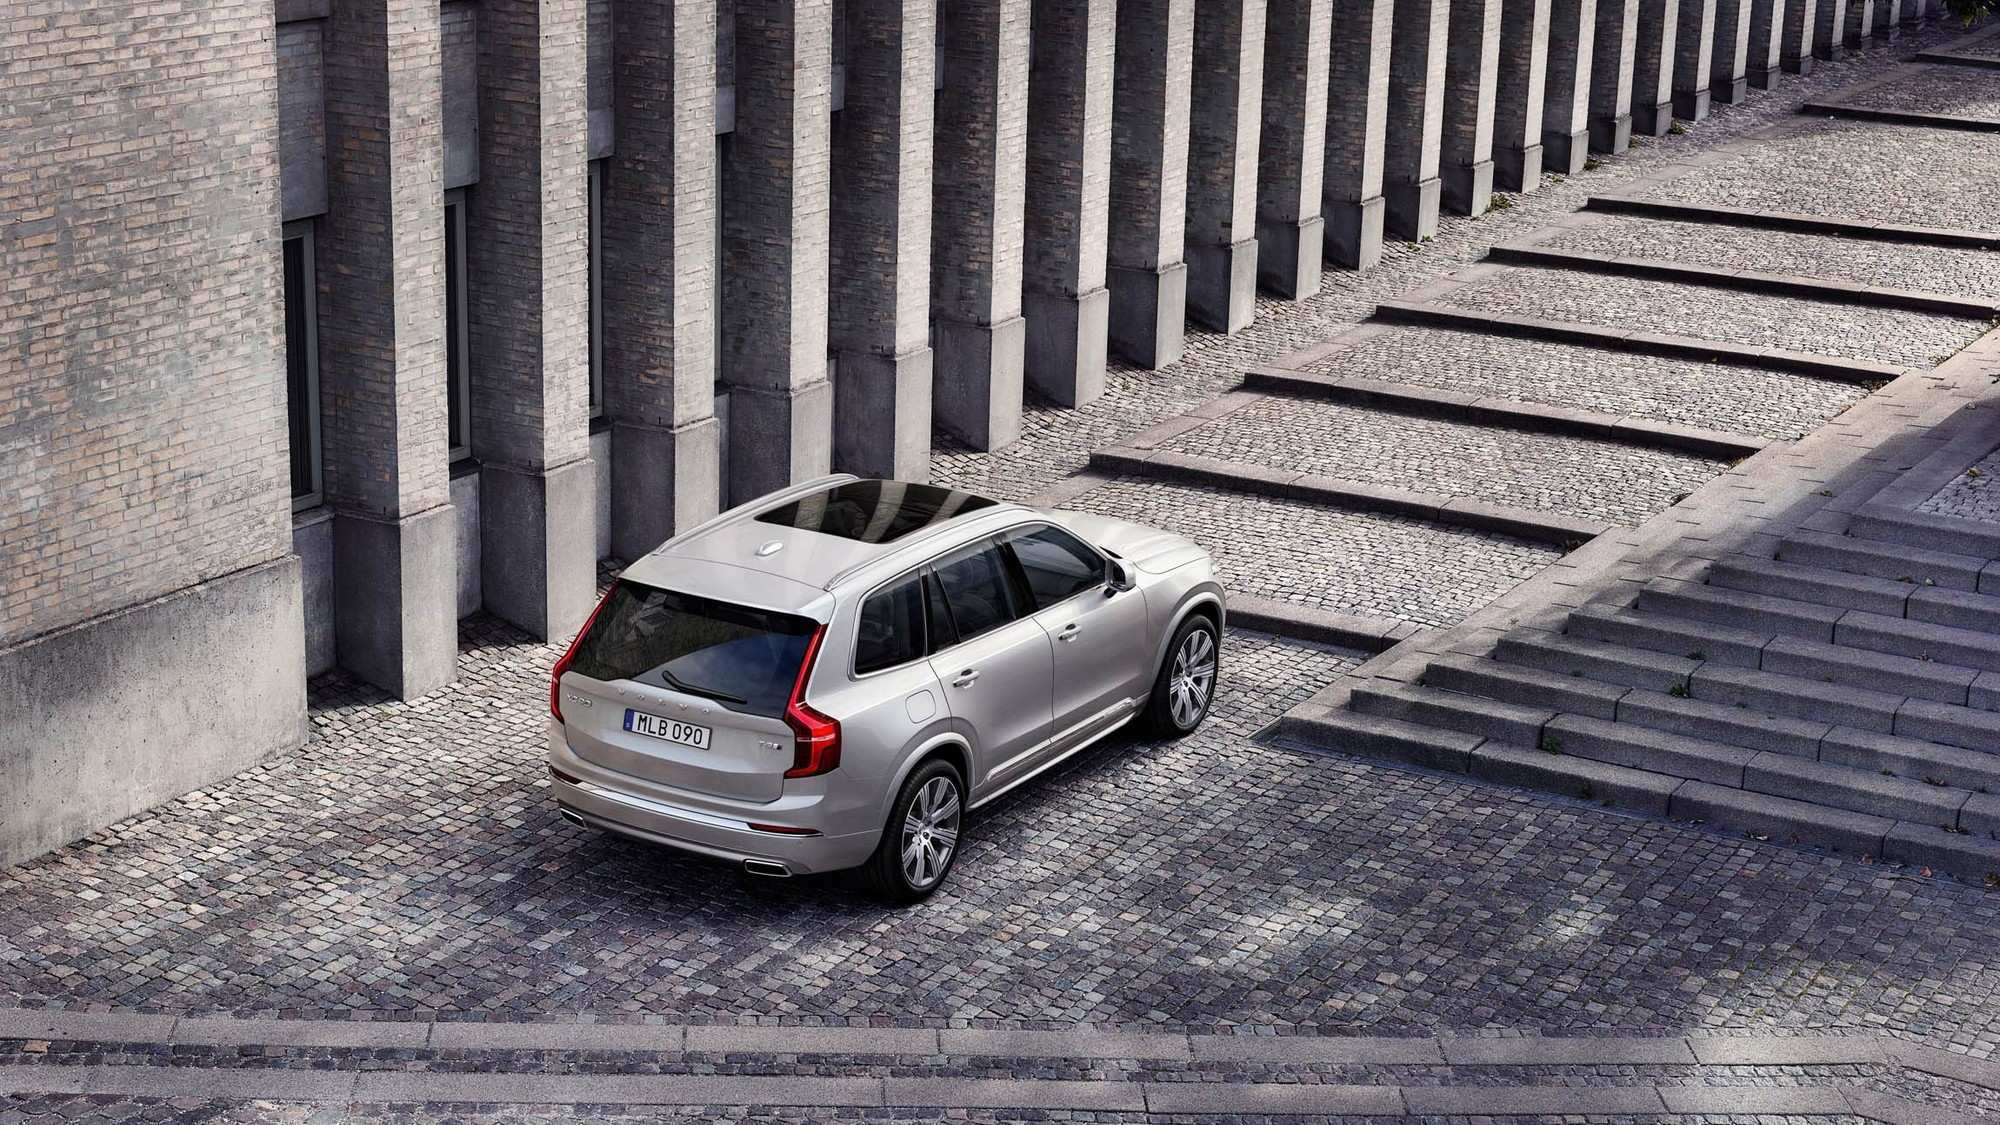 83 The Best 2020 Volvo XC90 Price